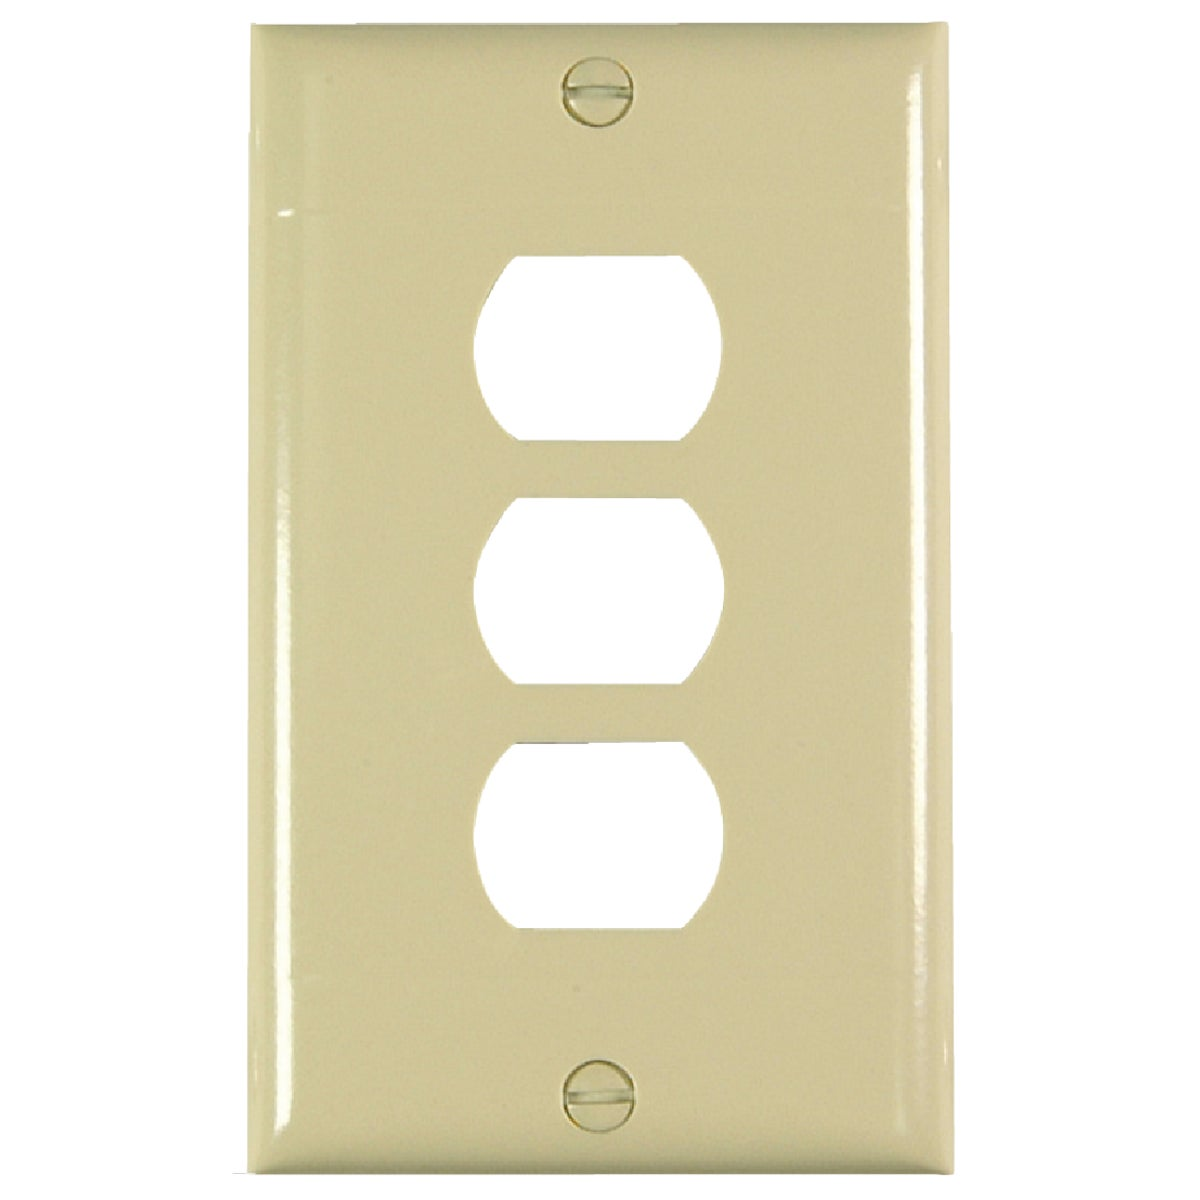 IV RIBBED WALL PLATE - K3-I by Pass Seymour Legrand